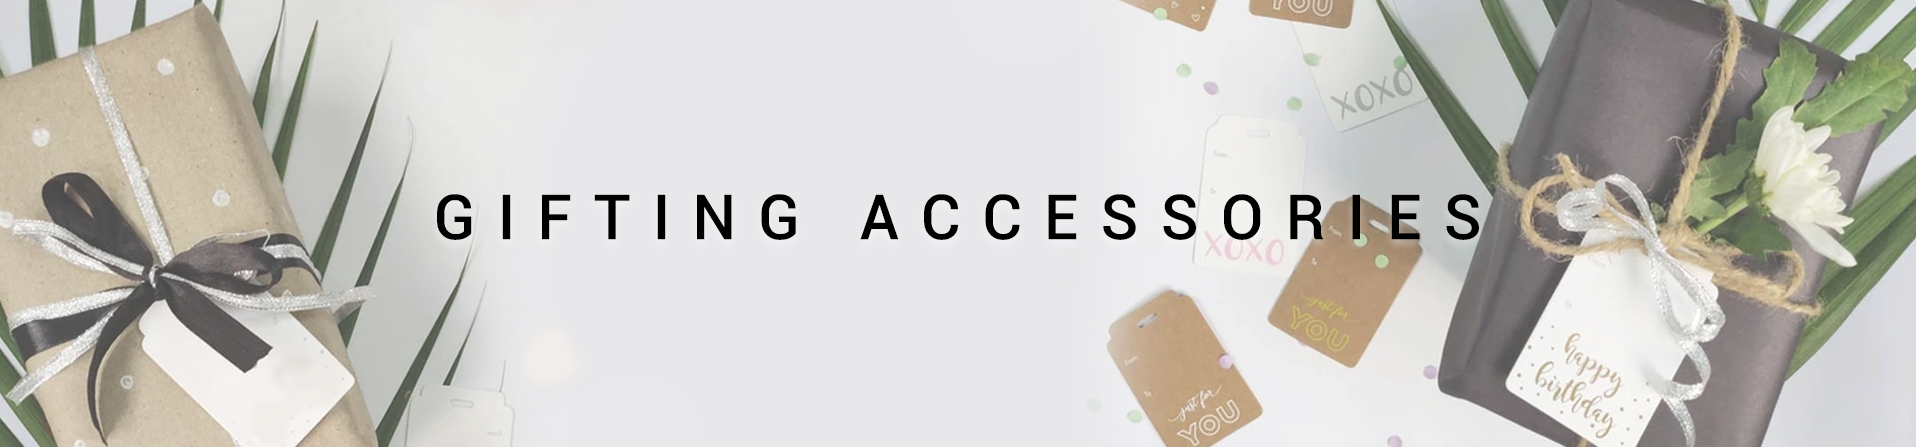 - Gifting Accessories -